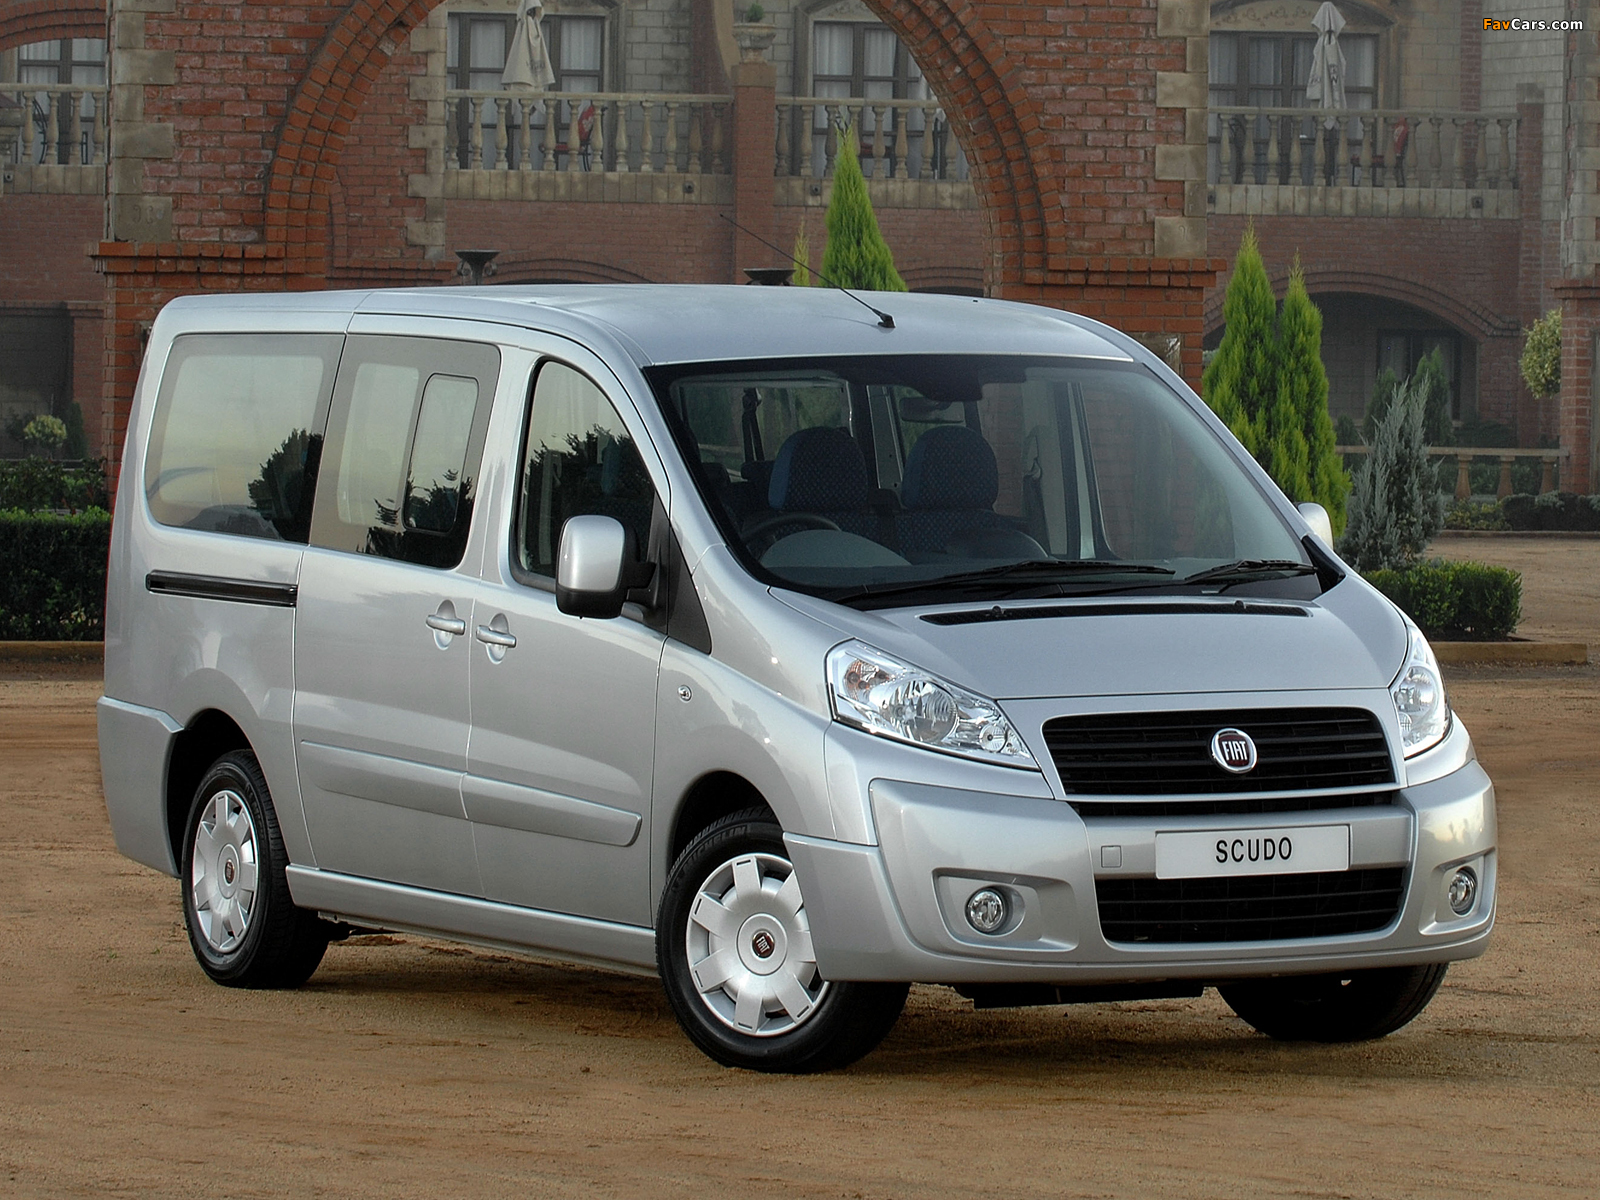 fiat scudo panorama za spec 2008 images 1600x1200. Black Bedroom Furniture Sets. Home Design Ideas